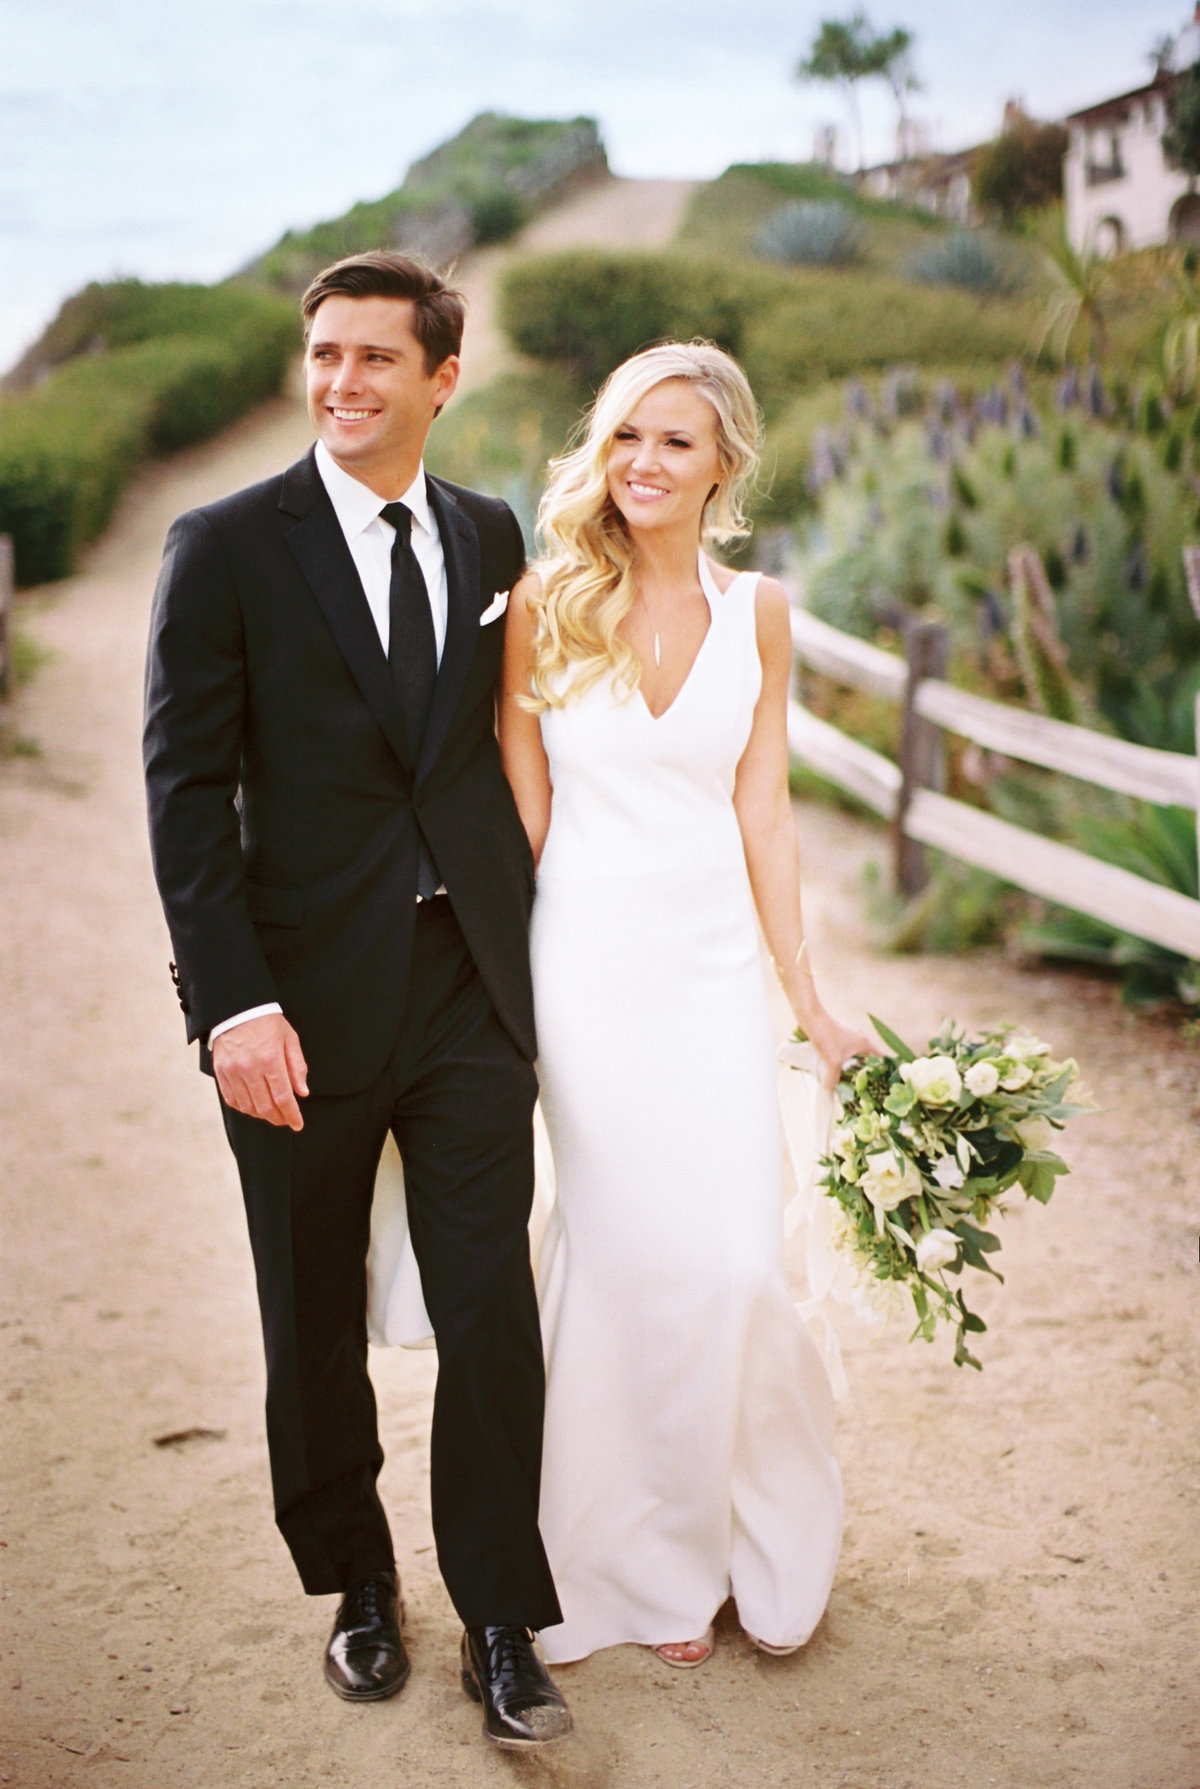 christianne_taylor_marika_fedalen_brian_olsen_bacara_weddings_wedding_christianne_taylor-20